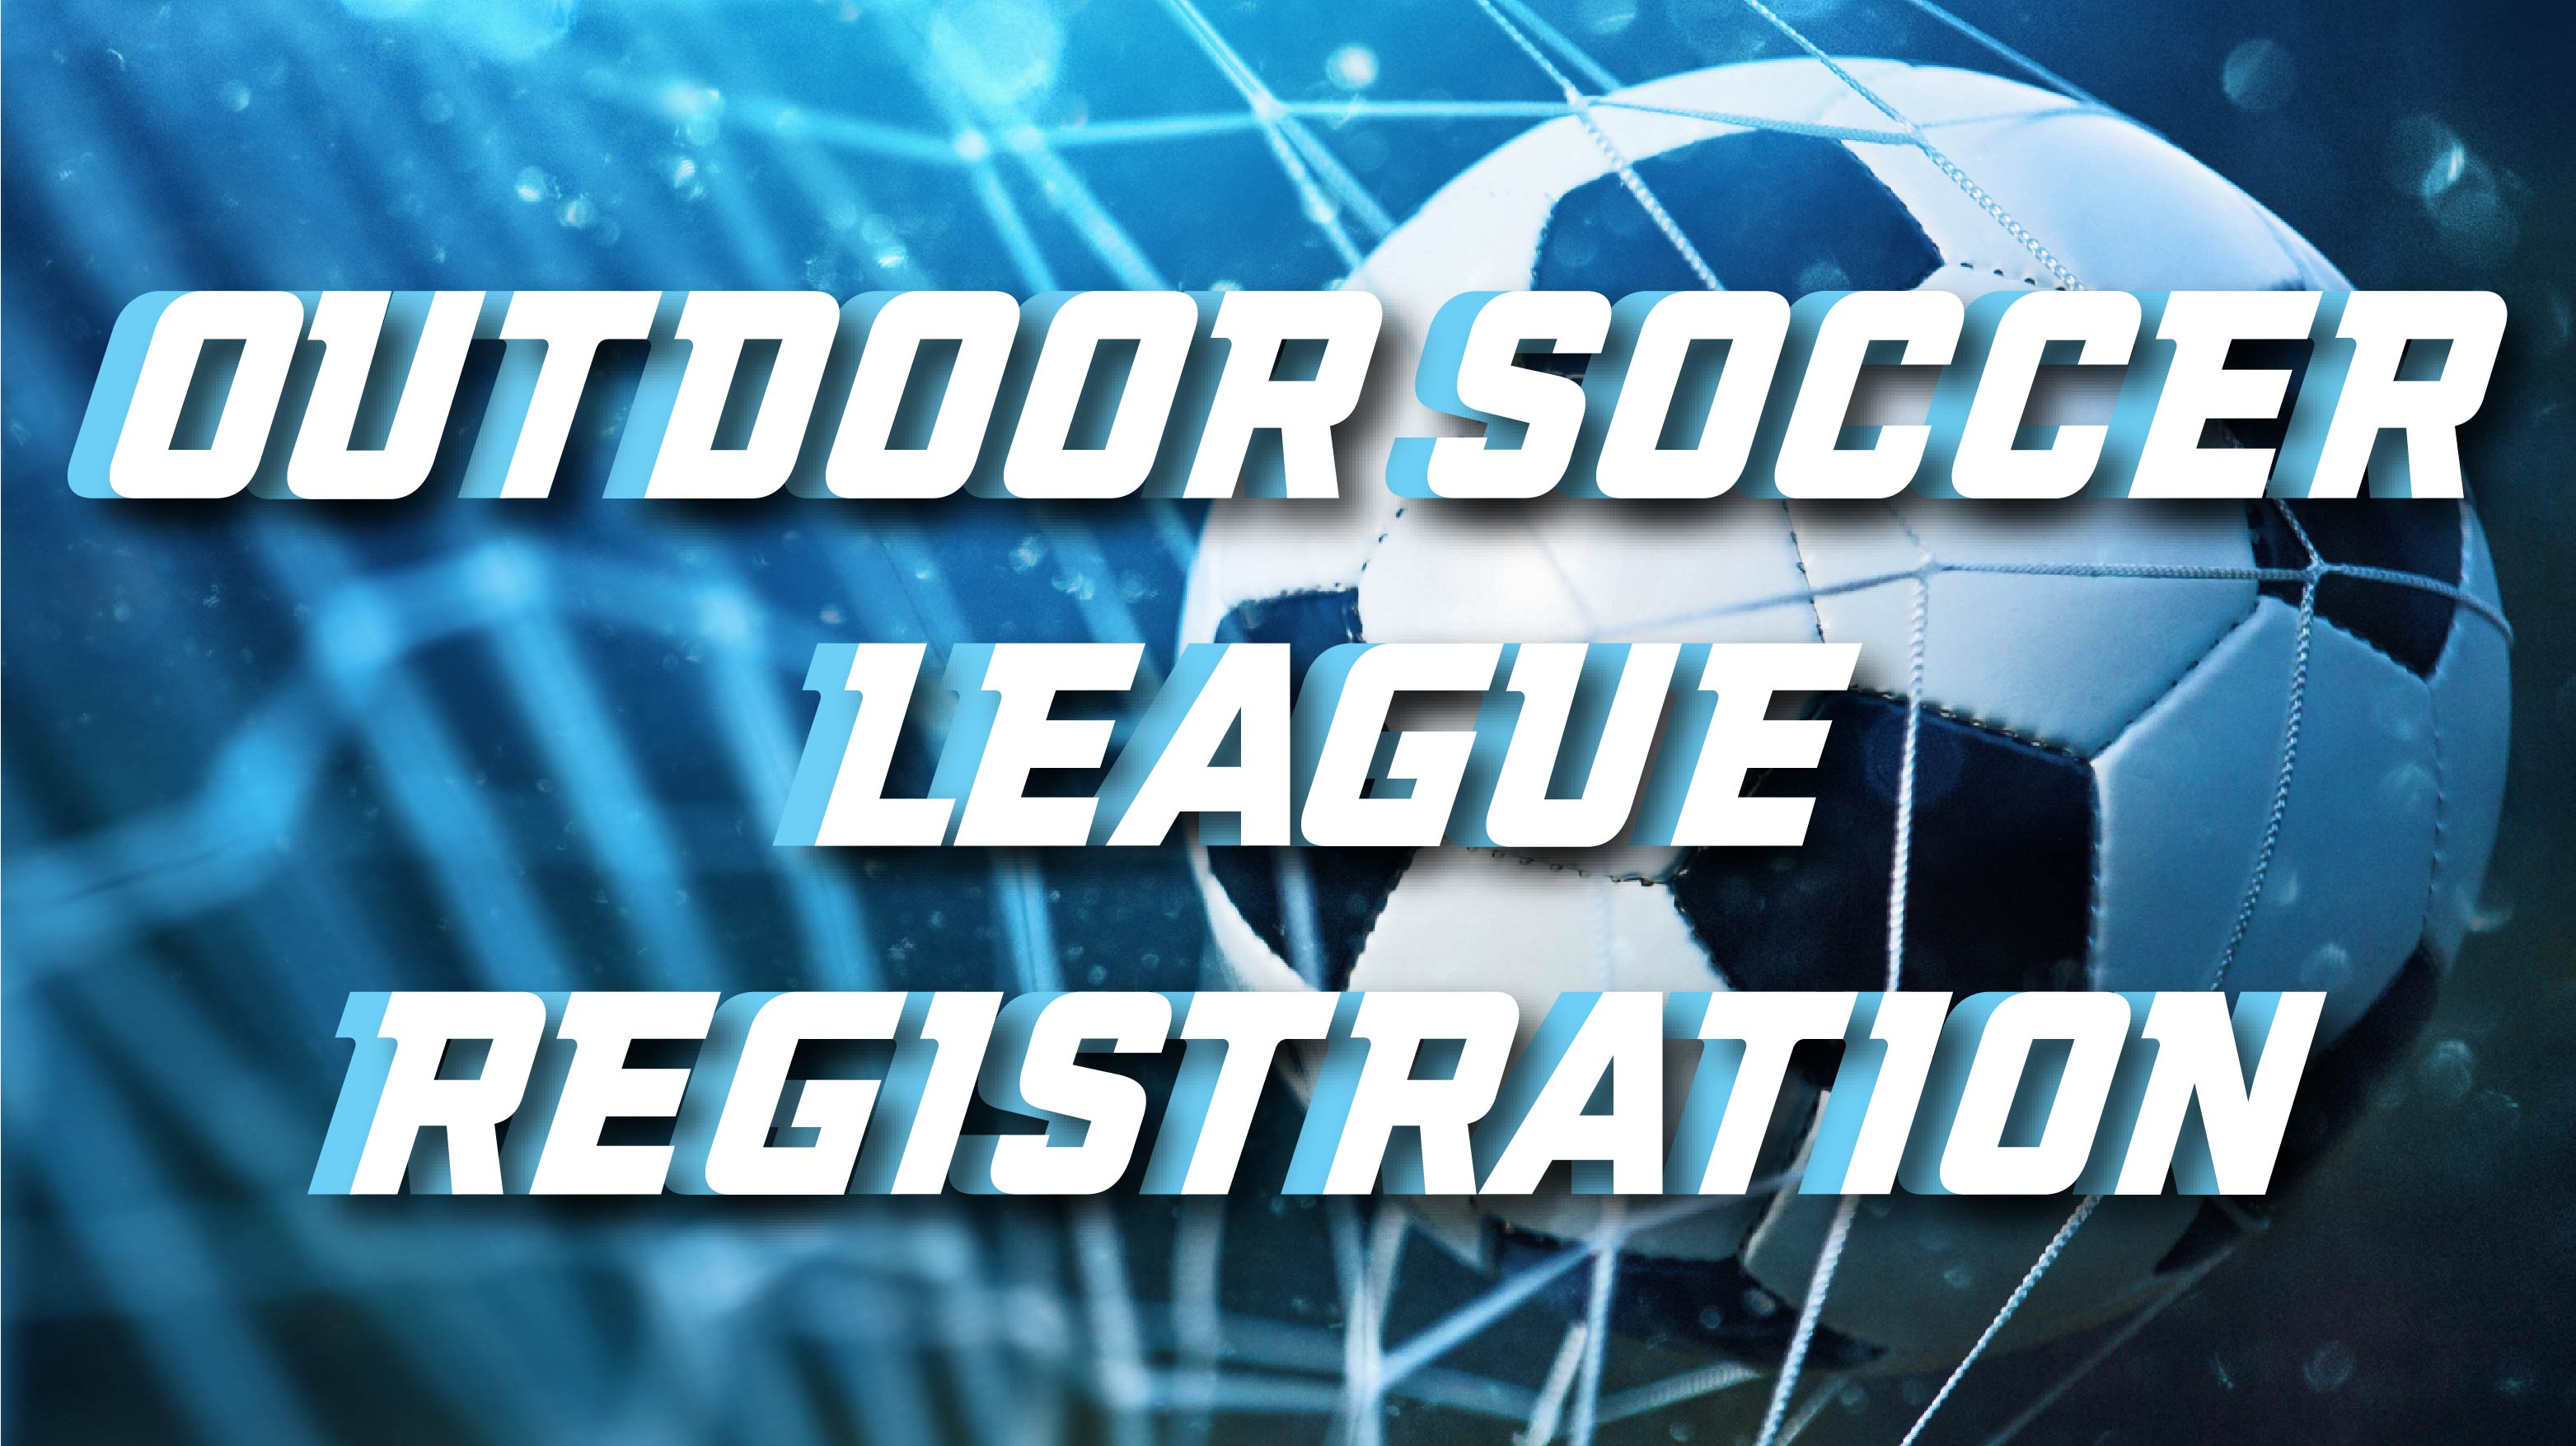 Outdoor Soccer League Registration